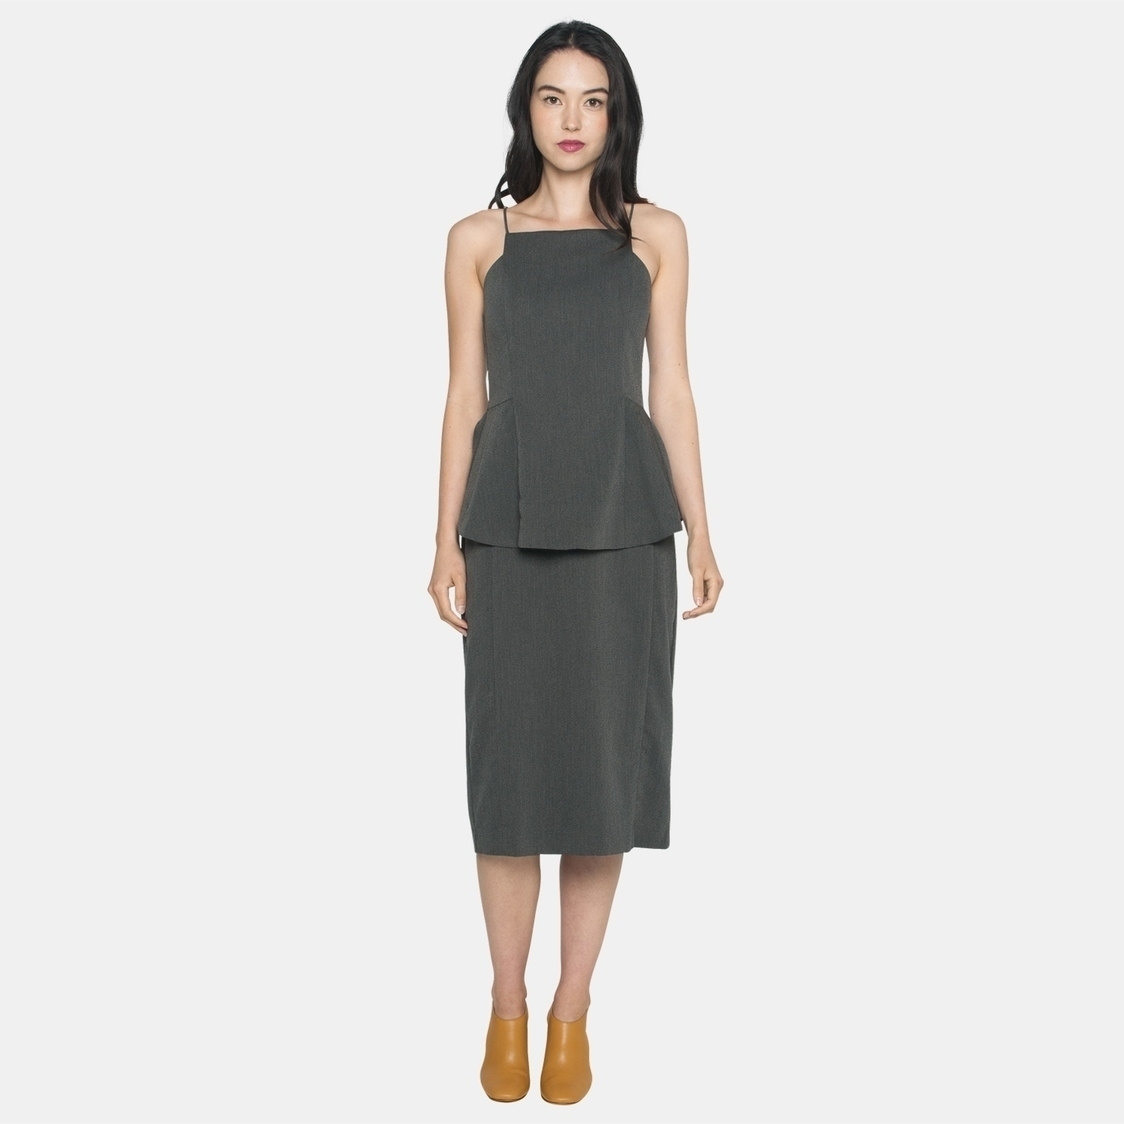 Ellysage Peplum Cami Pencil Dress in Grey